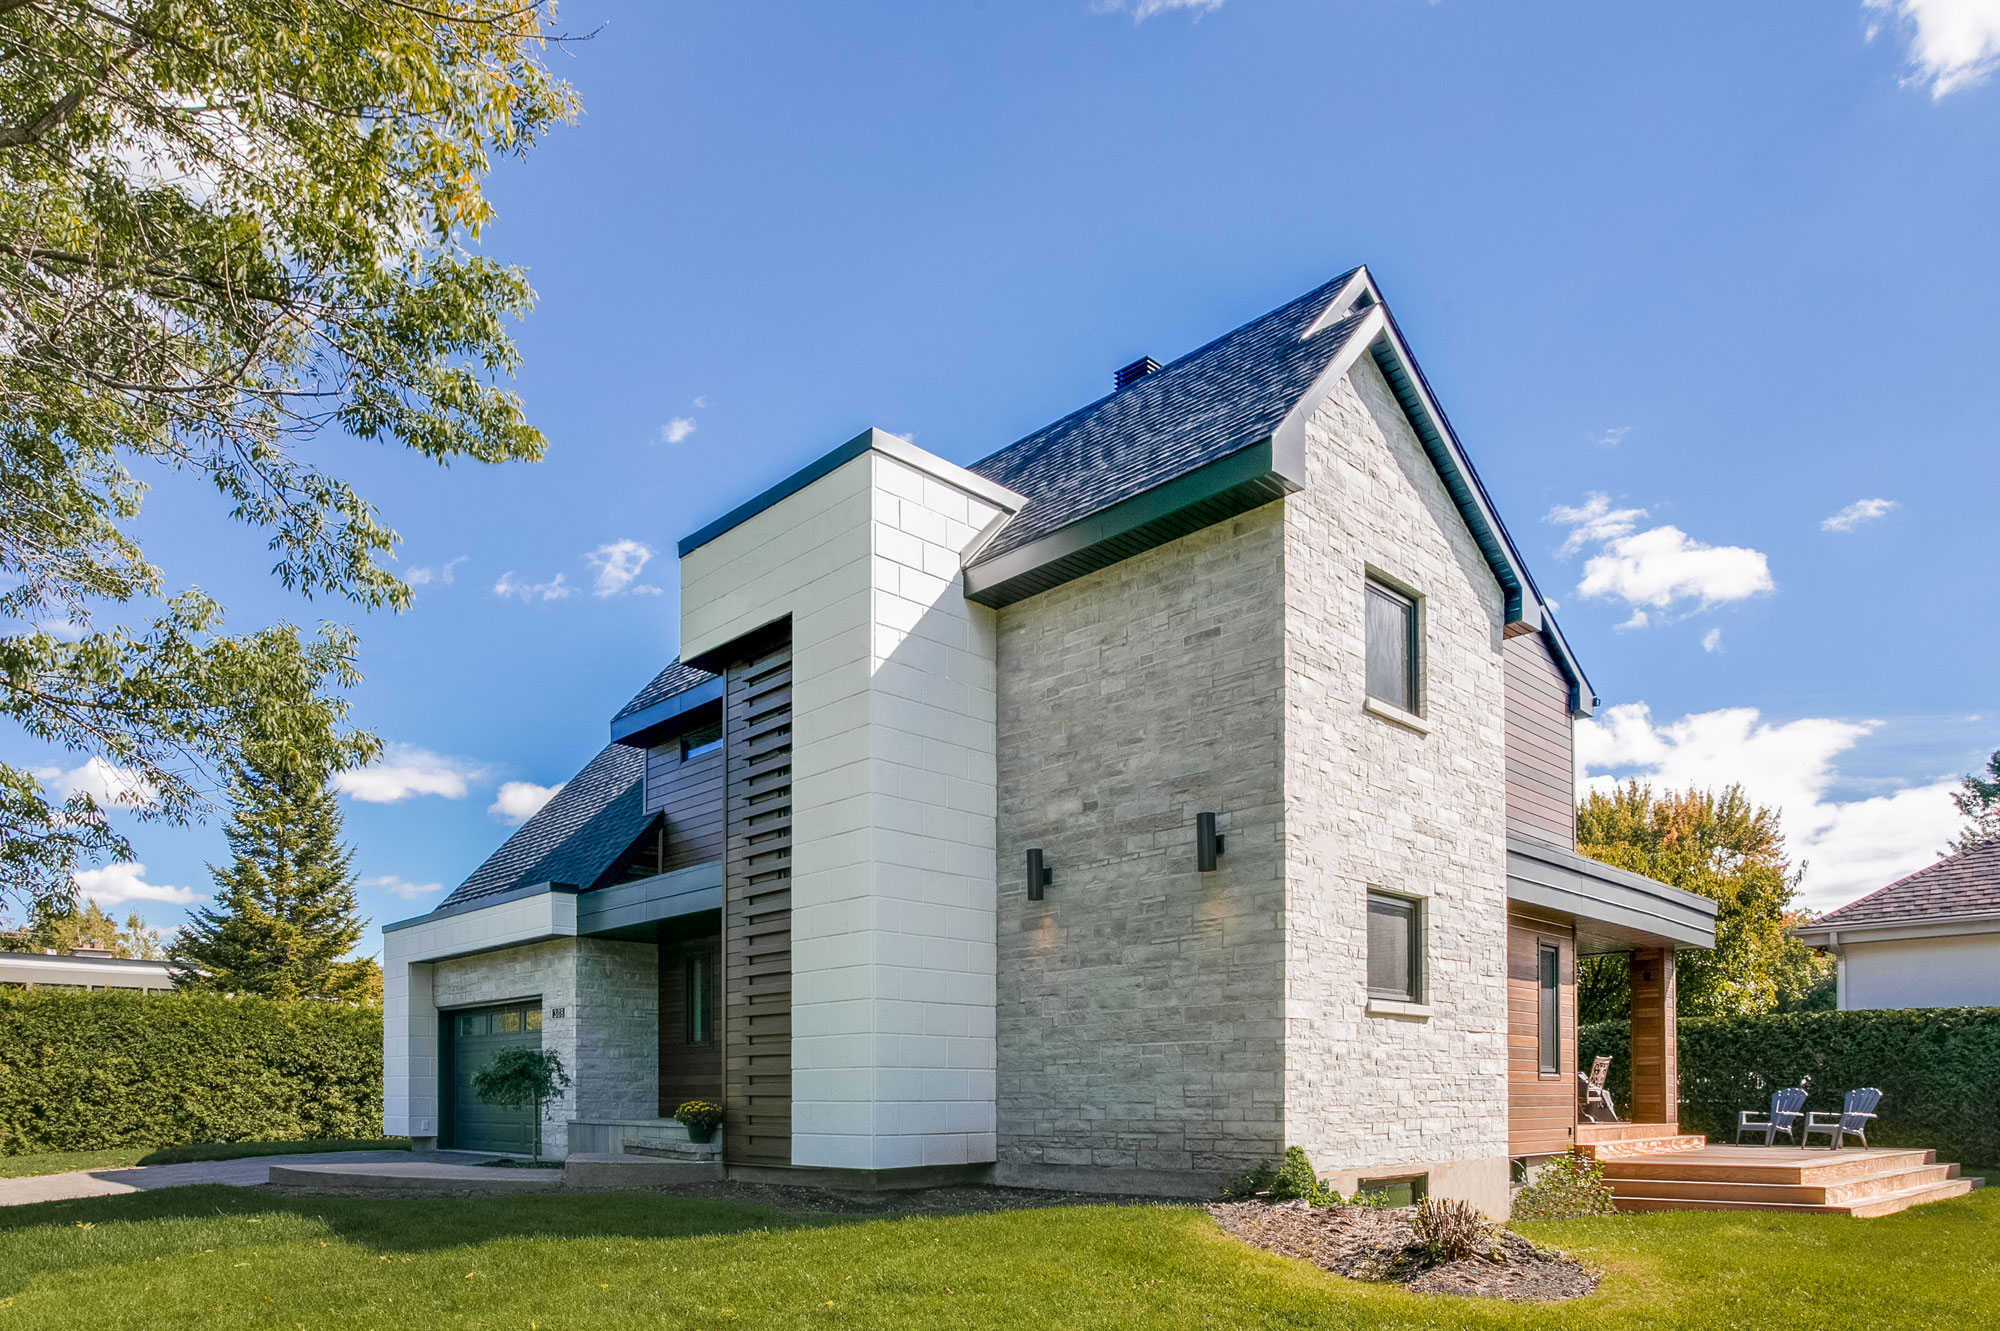 Exterior Siding Options & Costs | For Toronto and Montreal